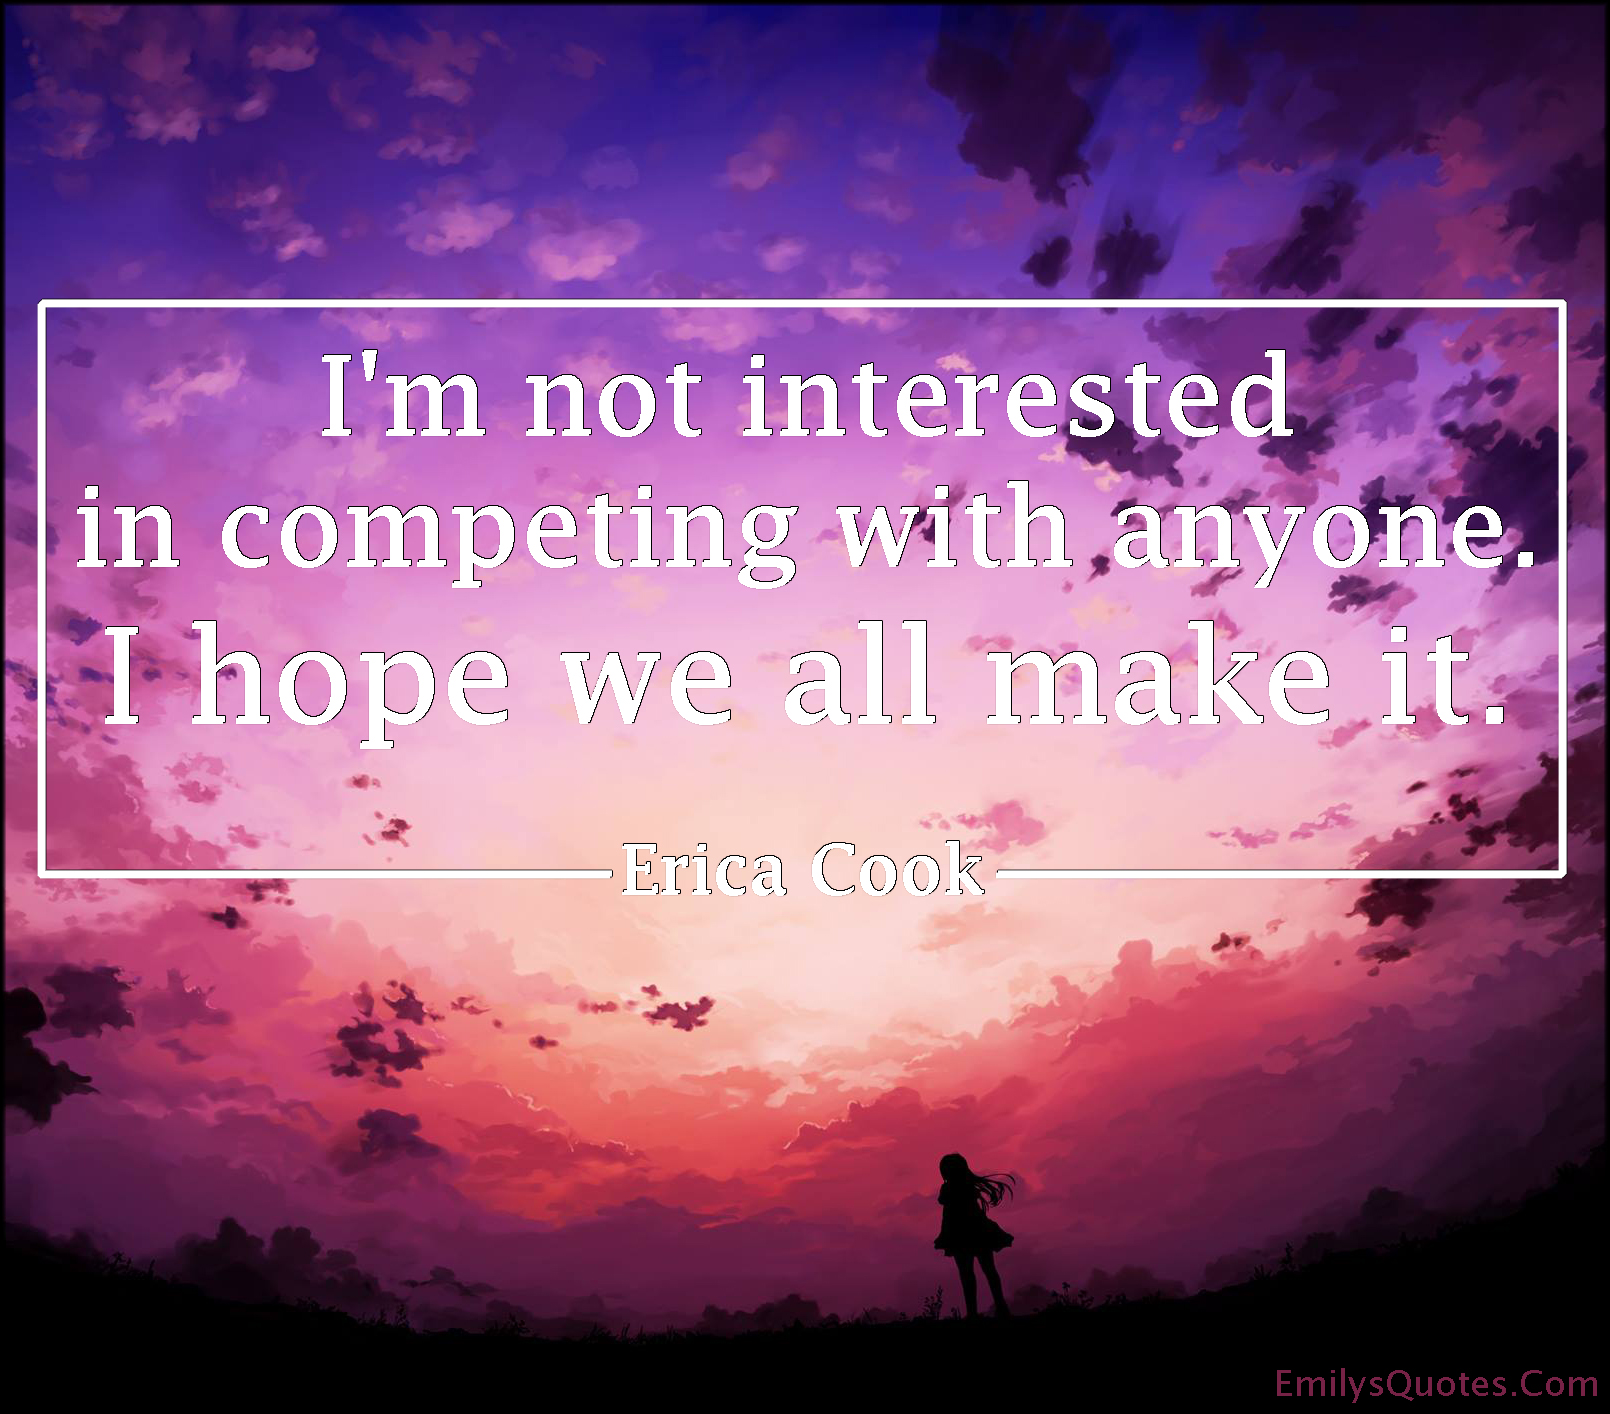 EmilysQuotes.Com - interested, competing, hope, make it, inspirational, being a good person, kindness, positive, life, Erica Cook